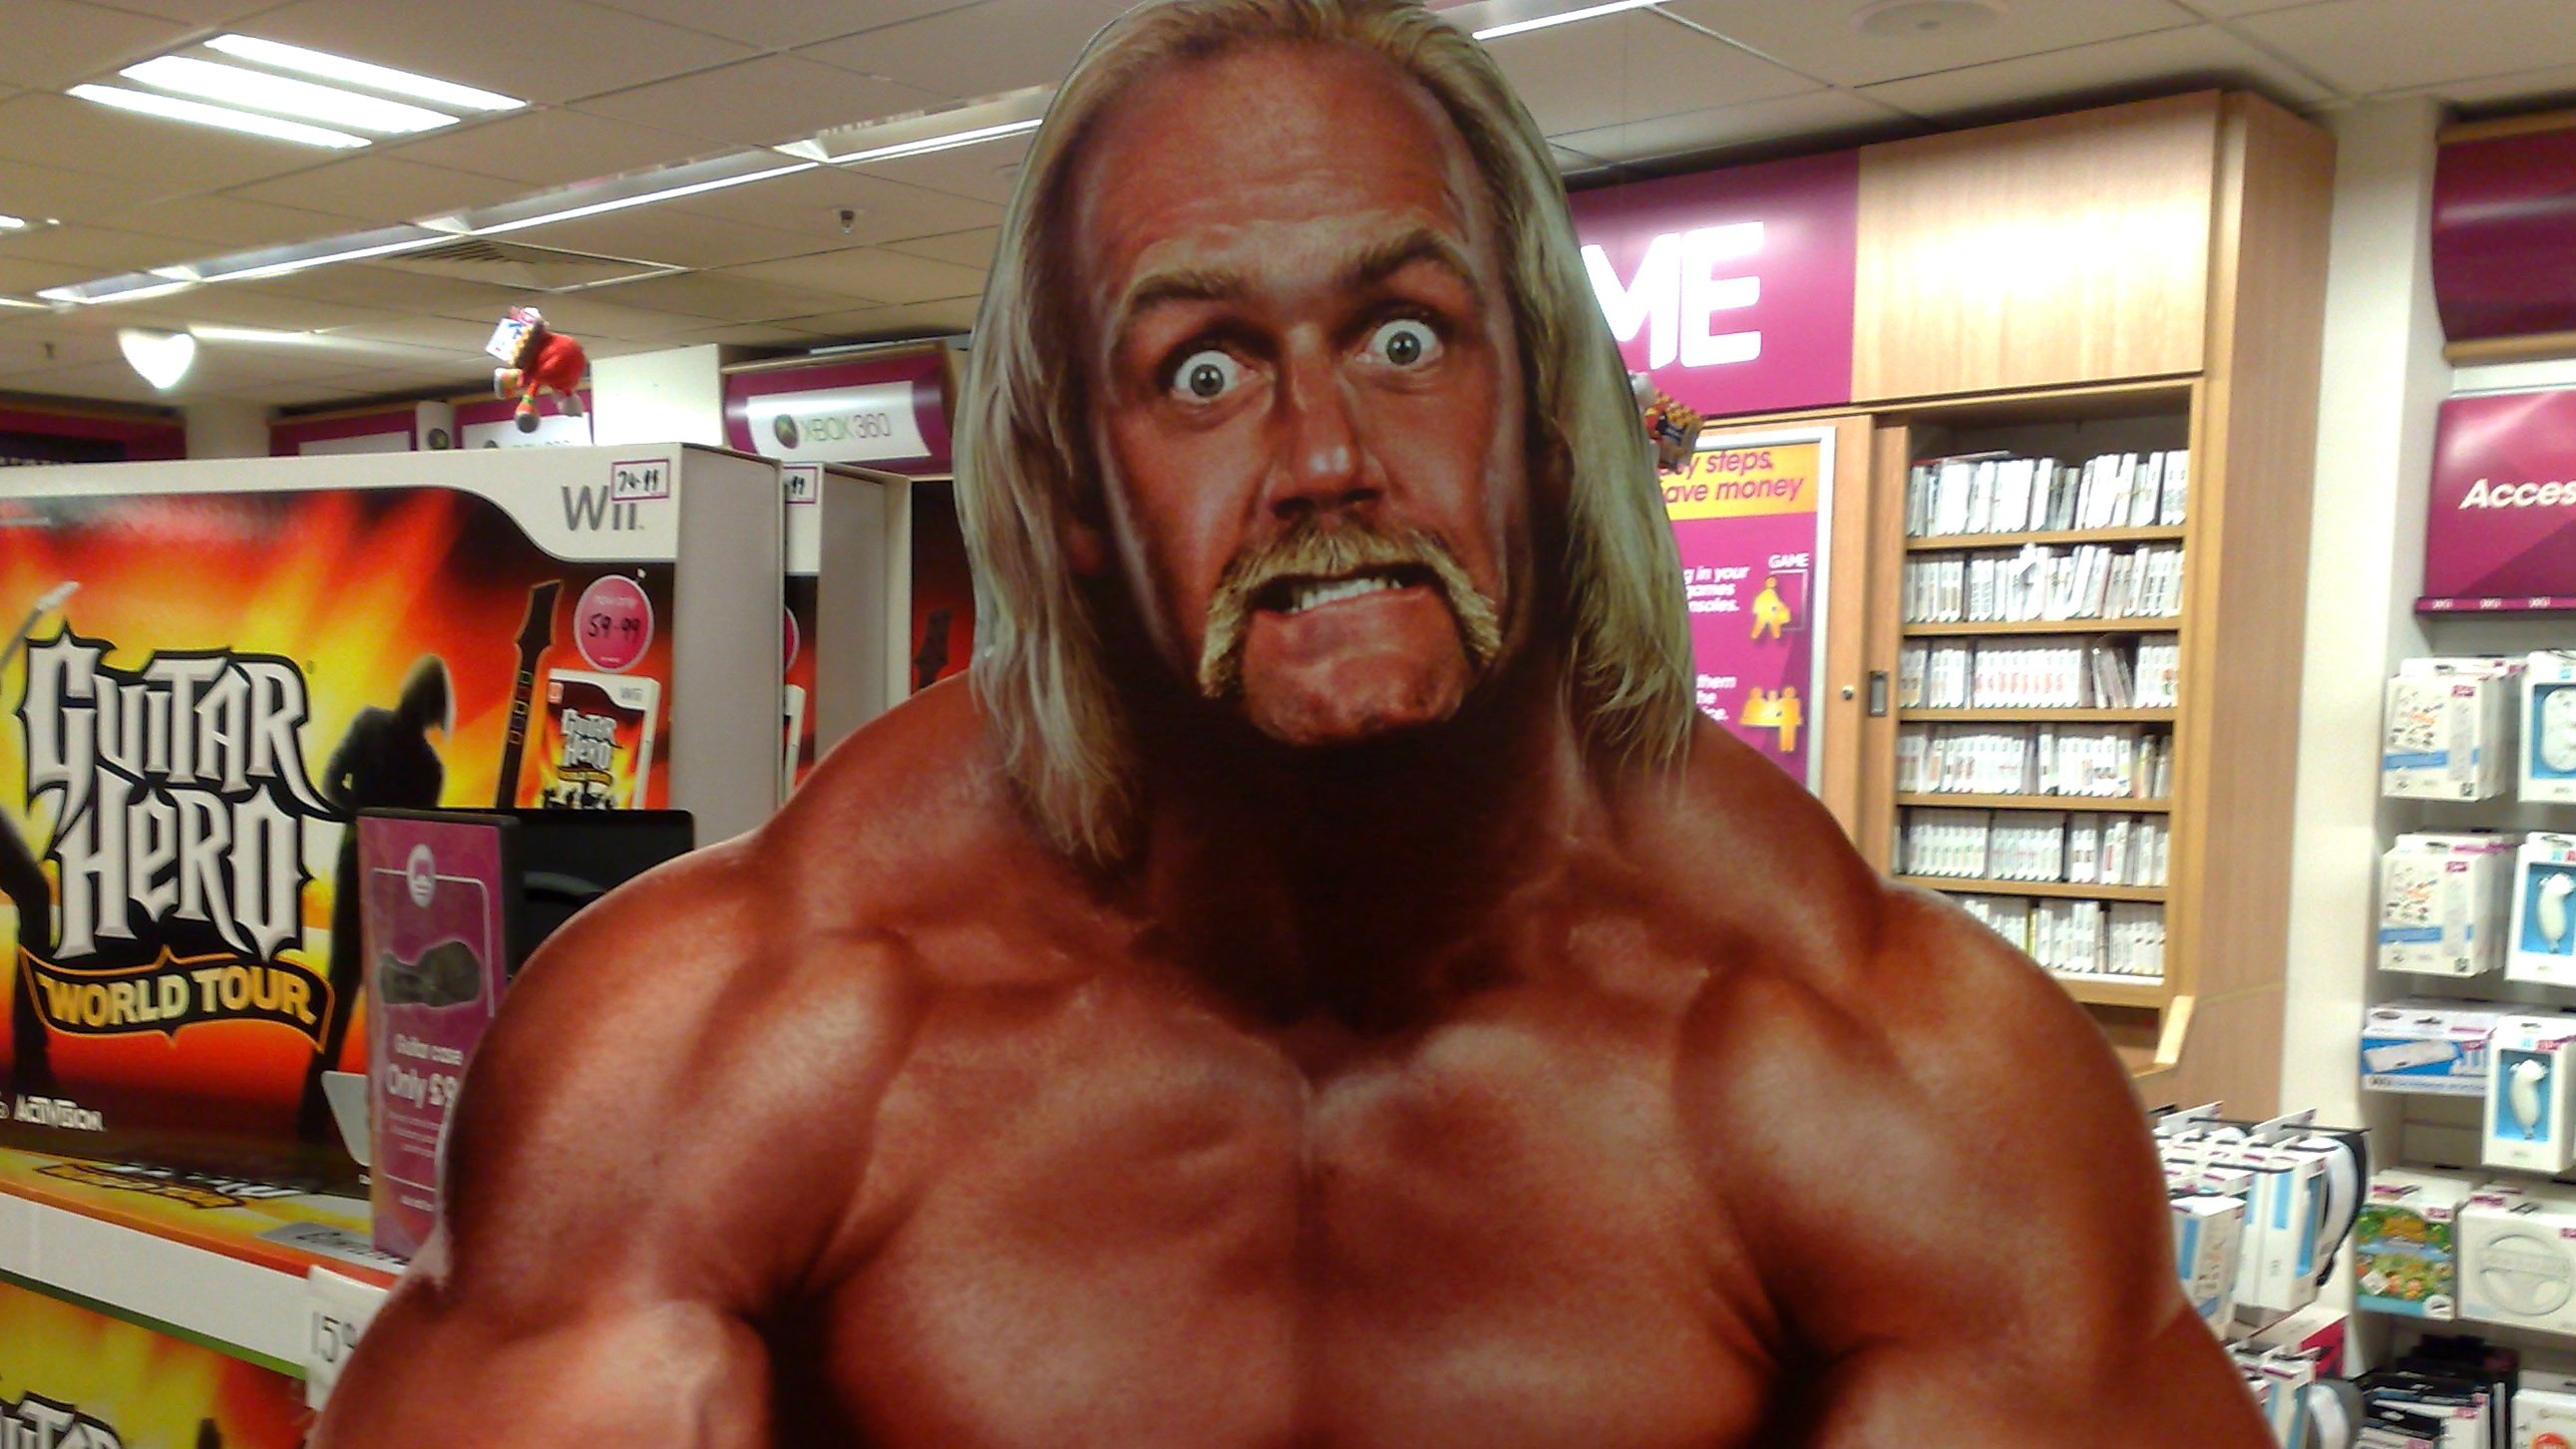 A poster of professional wrestler Hulk Hogan mugging for the camera.